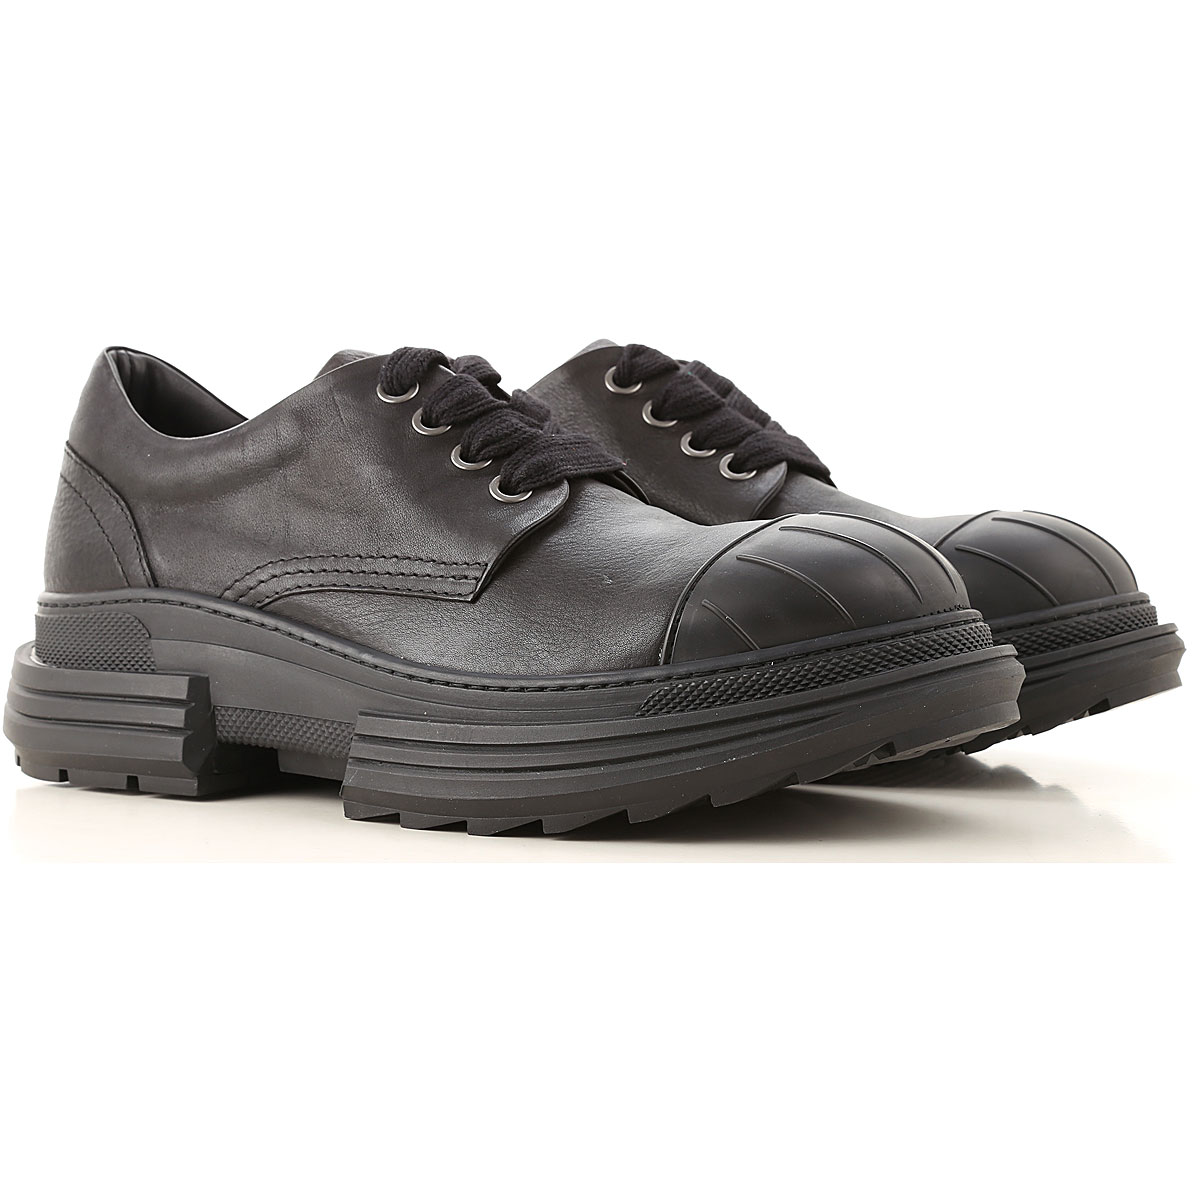 Beyond Lace Up Shoes for Men Oxfords, Derbies and Brogues, Black, Leather, 2019, 11.5 8 9